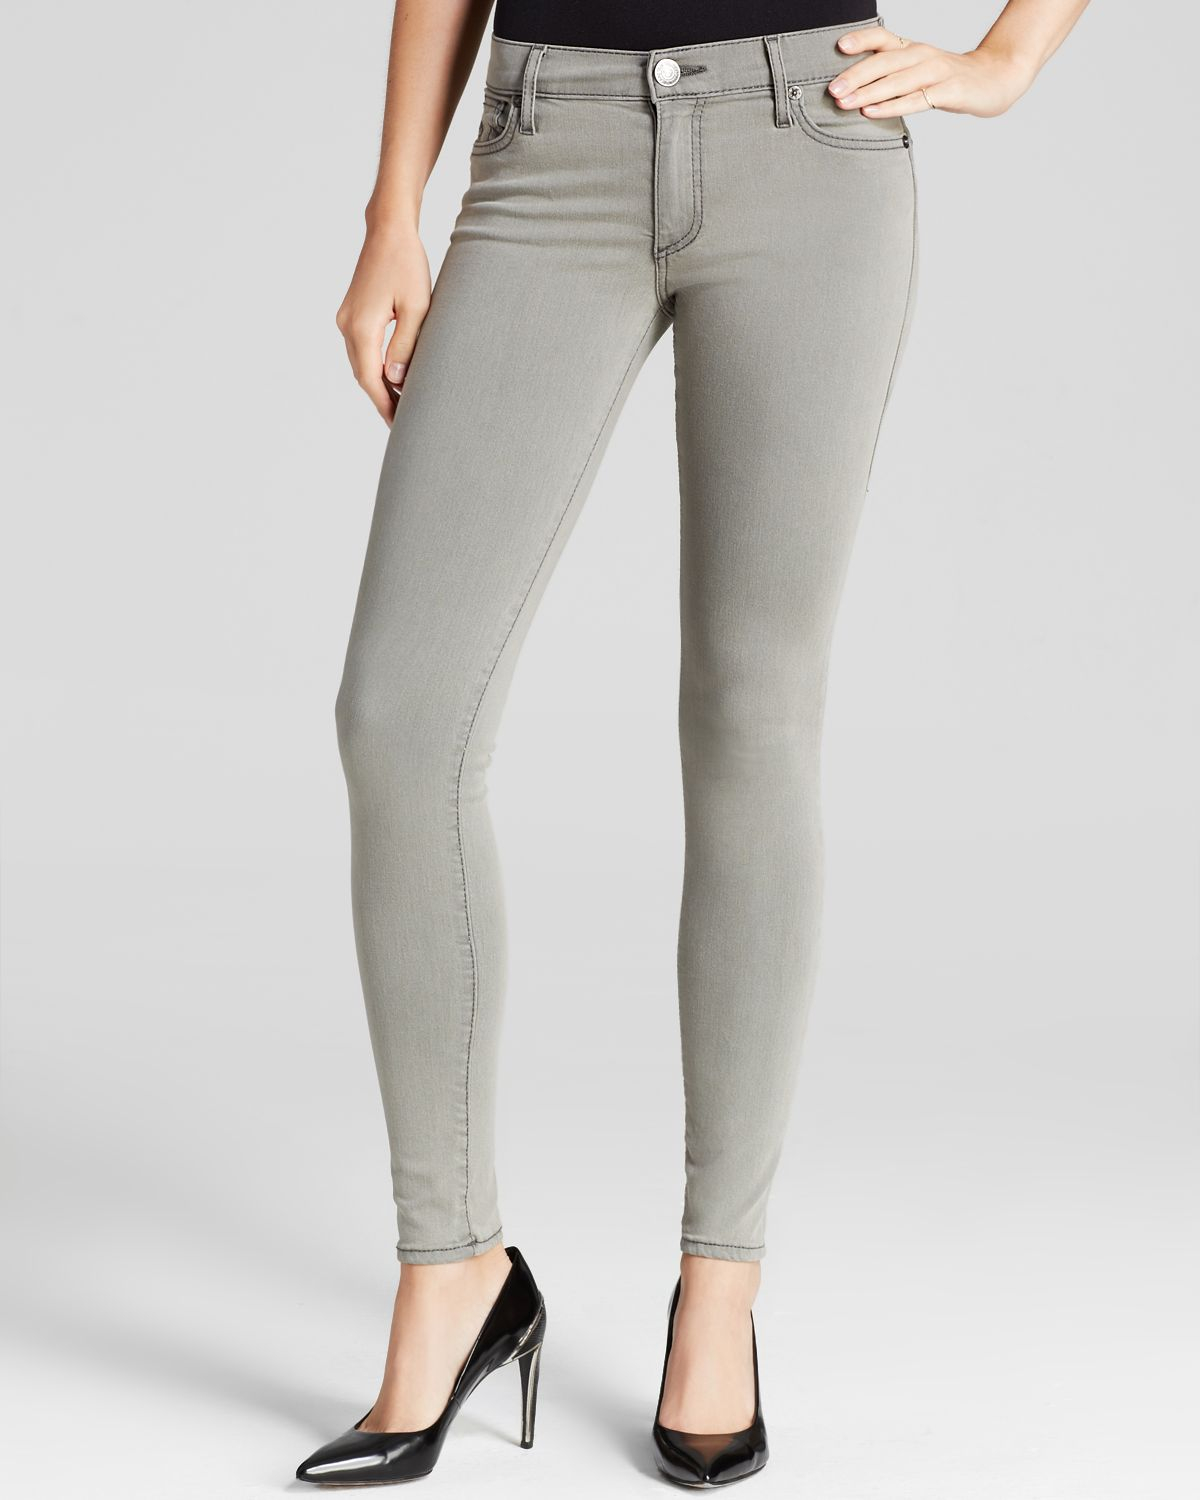 It's always prime time when you're in this pair of super skinny jeans! Styling includes tonal stitching, 5-pocket design, mid-rise waist, and minimal tonal hardware.